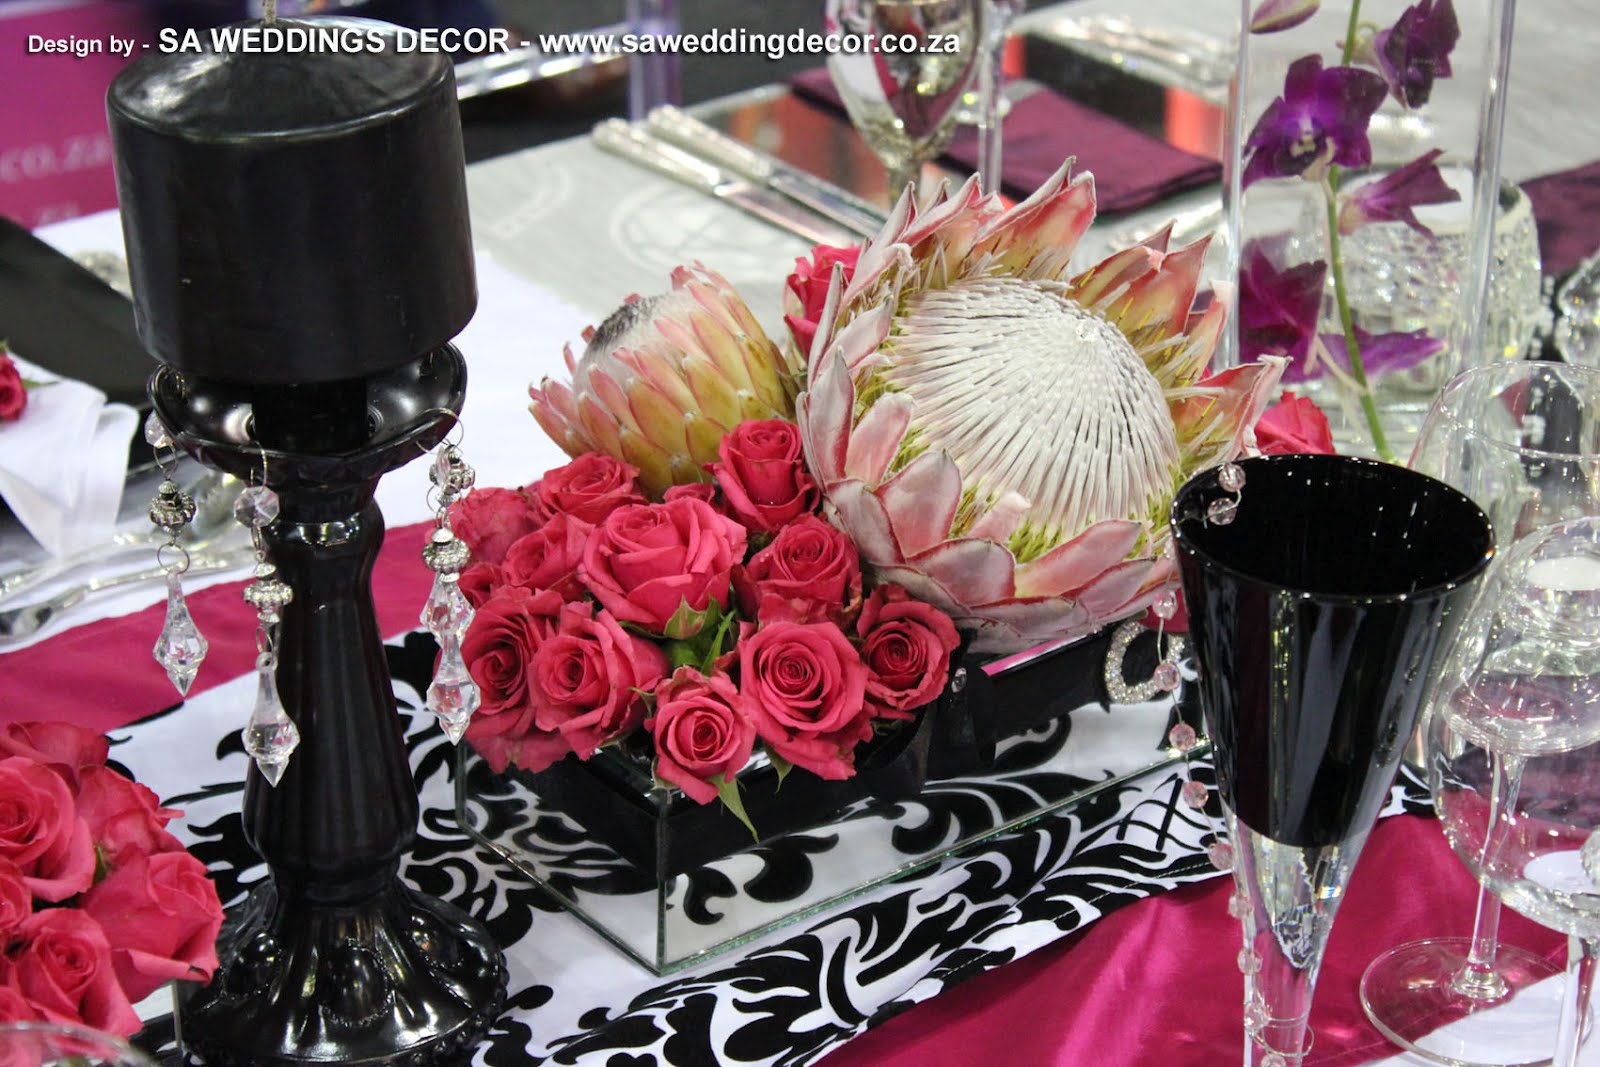 Overview Of The Wedding Expo Marchapril 2012 Jhb South Africa